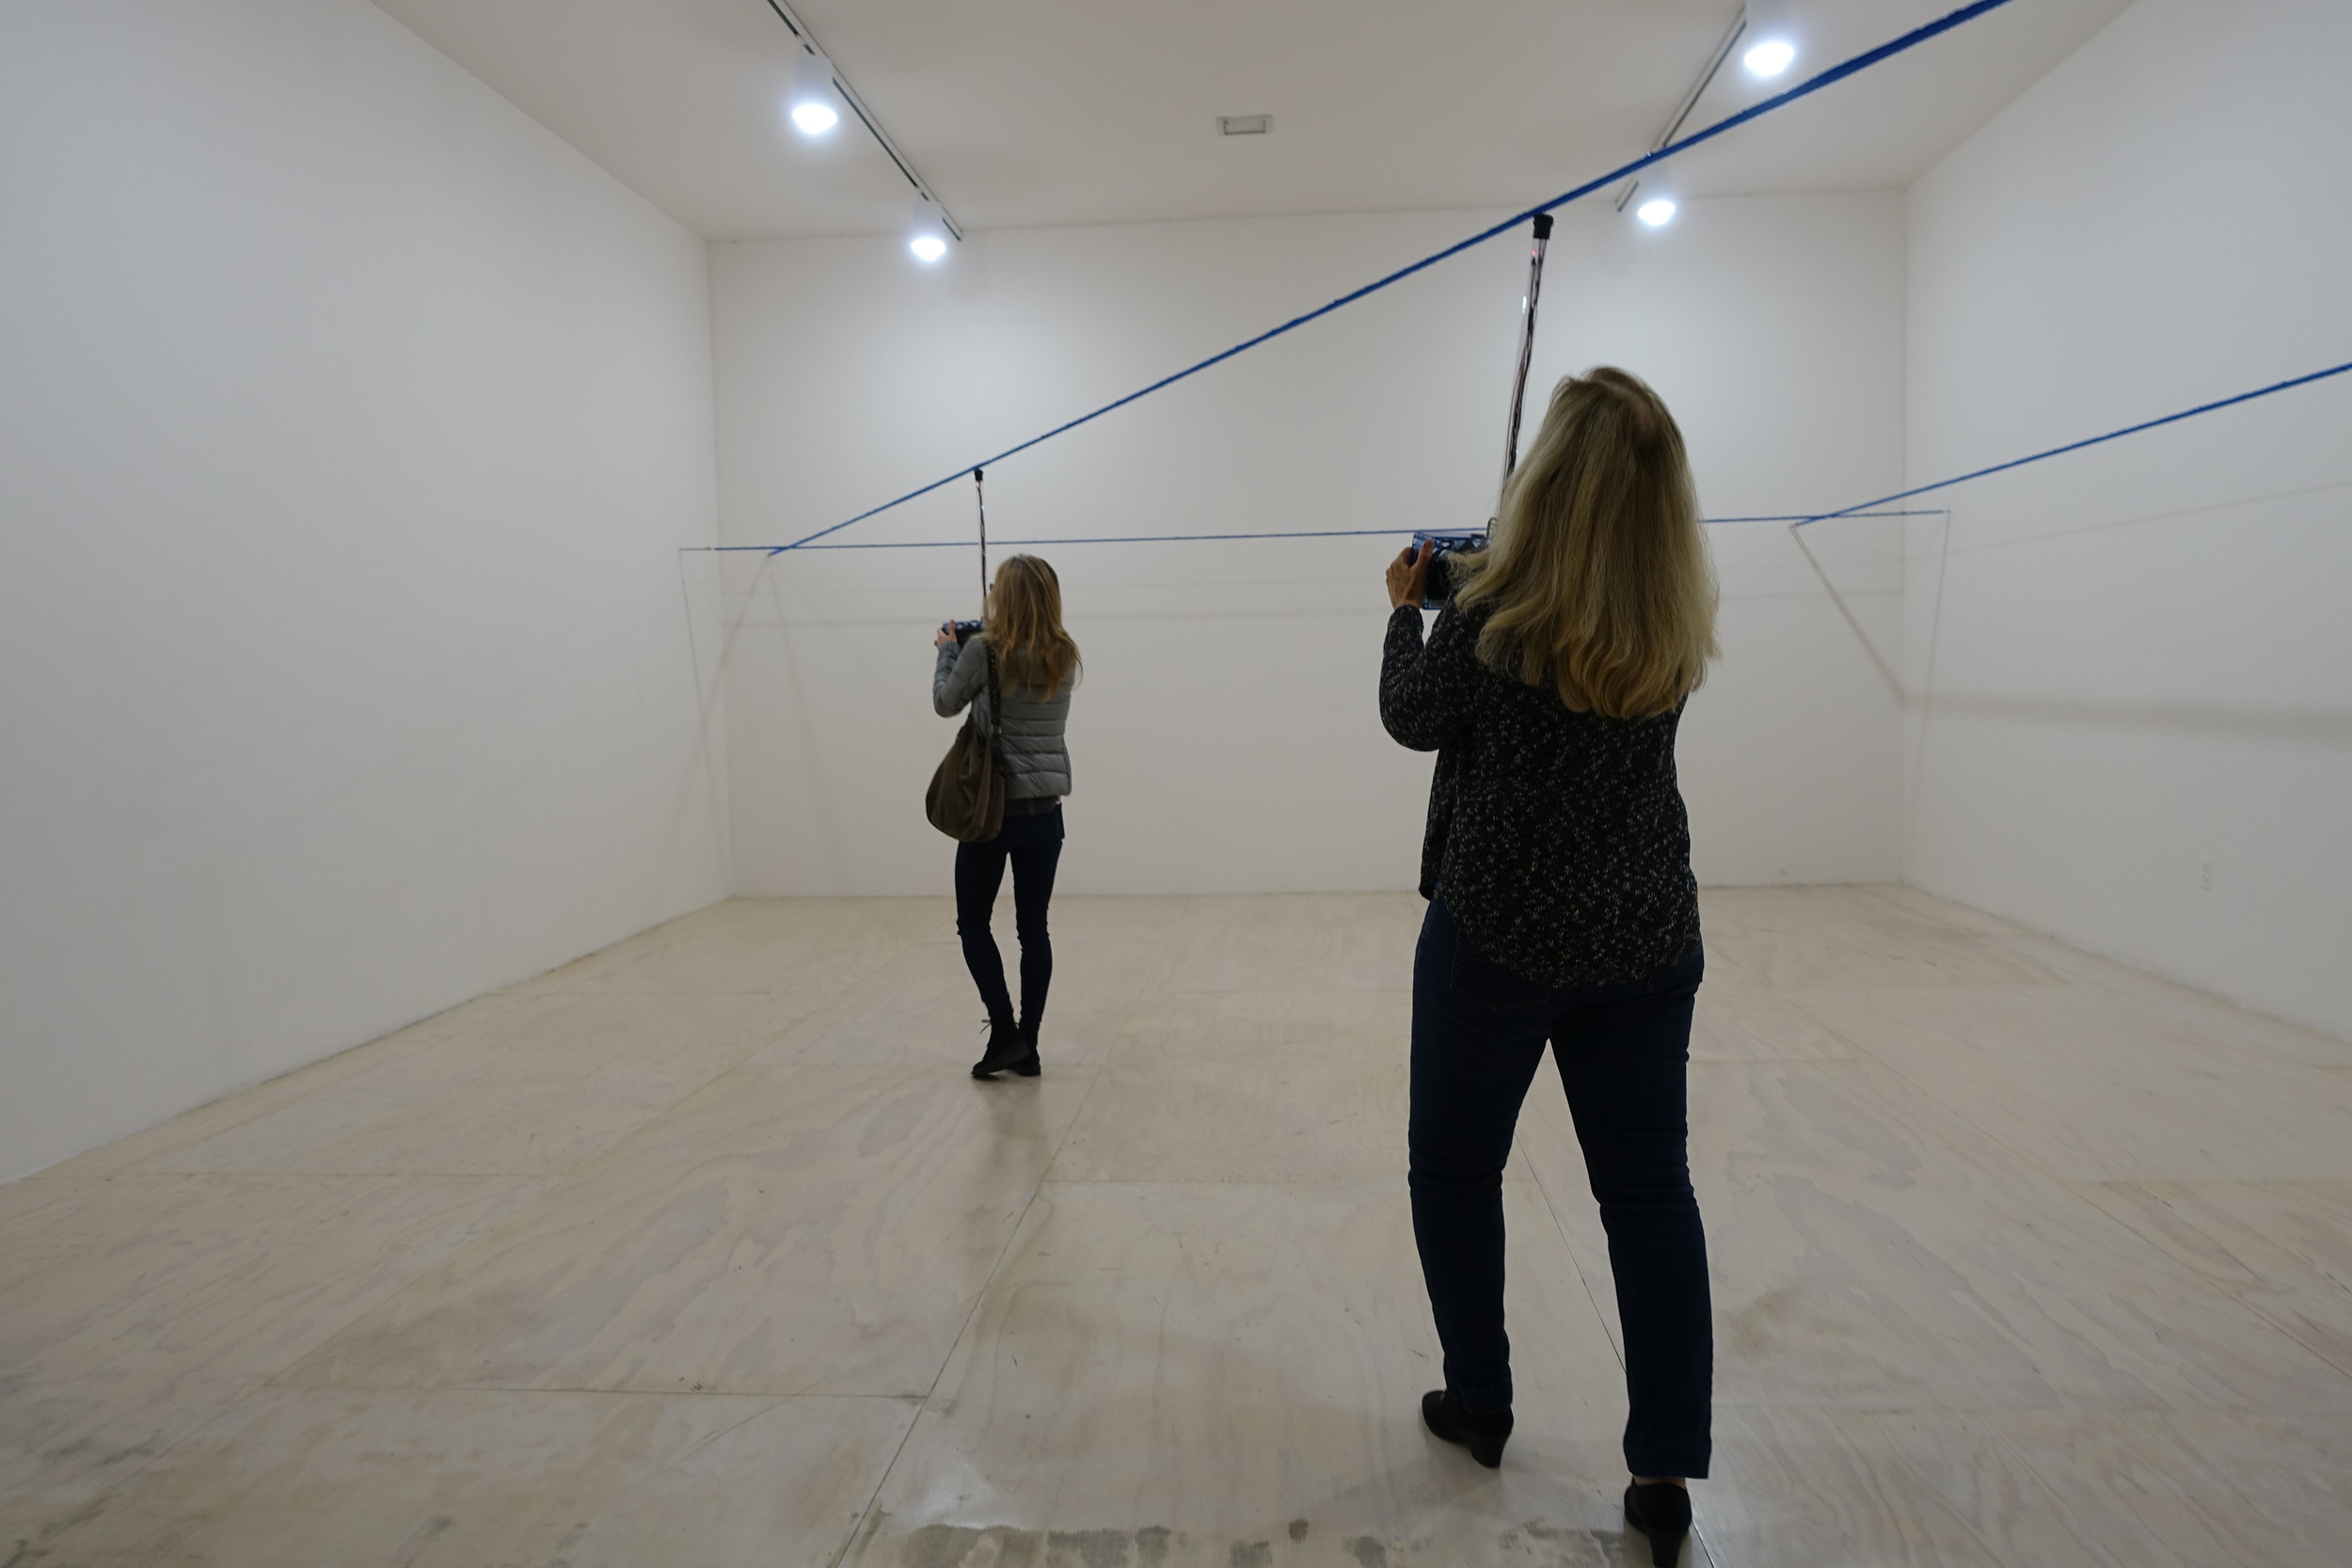 Daytripper365--Interacting with the art at MoMA PS1.JPG